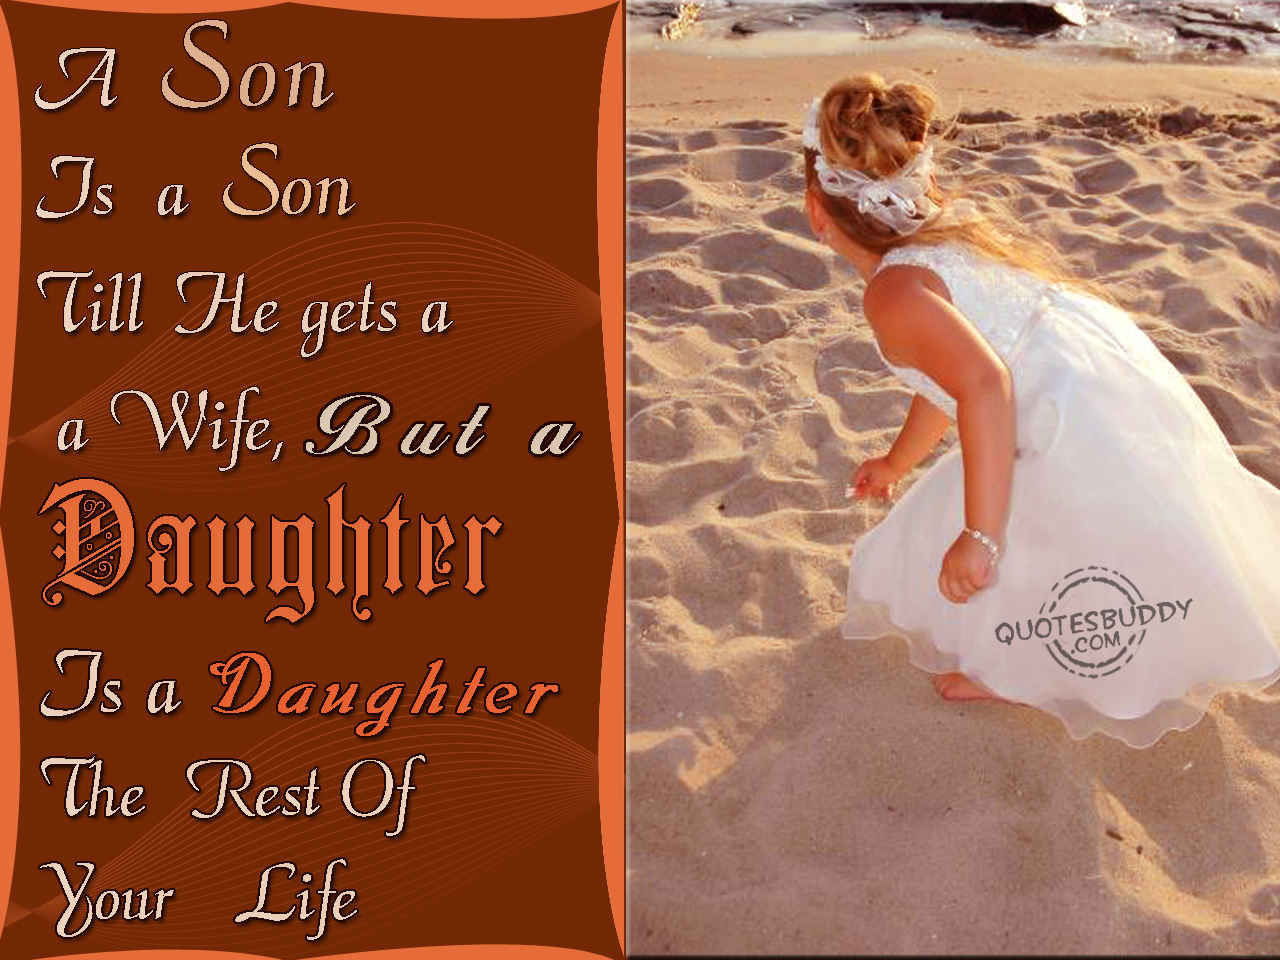 A Son Is a Son Till He Gets a Wife, But a Daughter Is a Daughter The Rest of Your Life